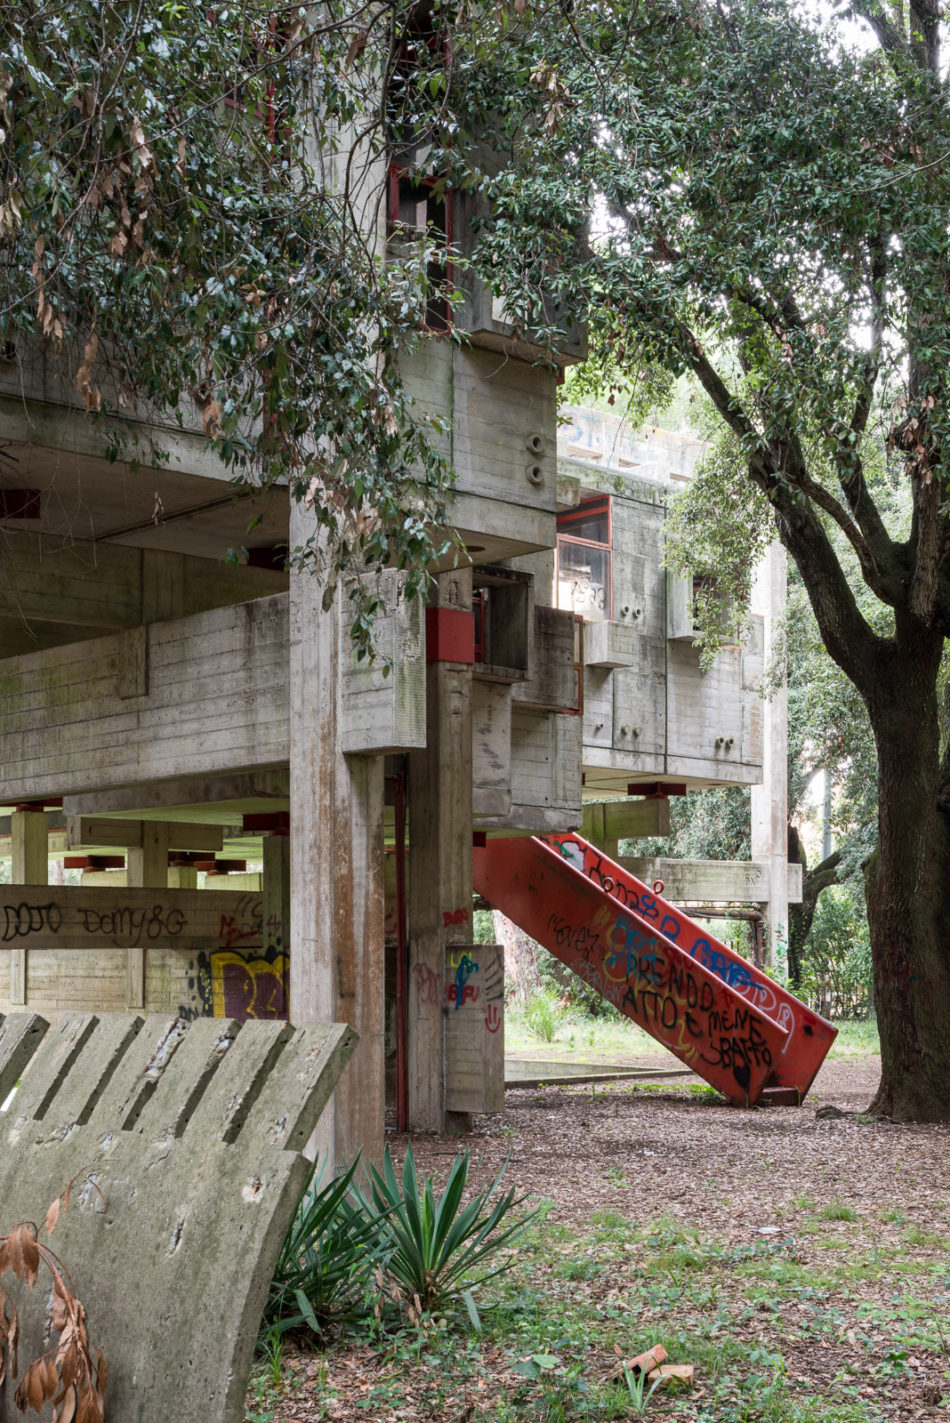 Italian Food Near Me Abandone Building Casa: 'An Unfinishable, Endless House': The Untold Story Of Casa